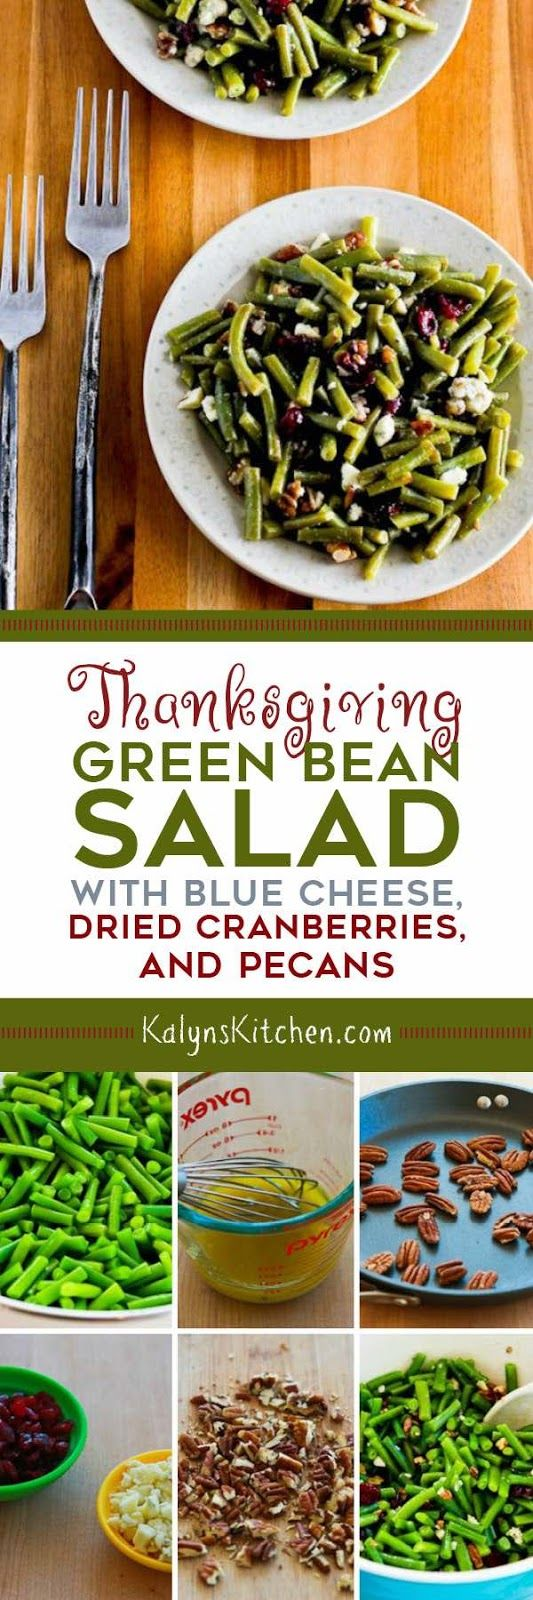 Skip the green bean casserole and make this amazing Thanksgiving Green Bean Salad with Blue Cheese, Dried Cranberries, and Pecans; this salad has all those holiday flavors and it can be made ahead! [found on KalynsKitchen.com]